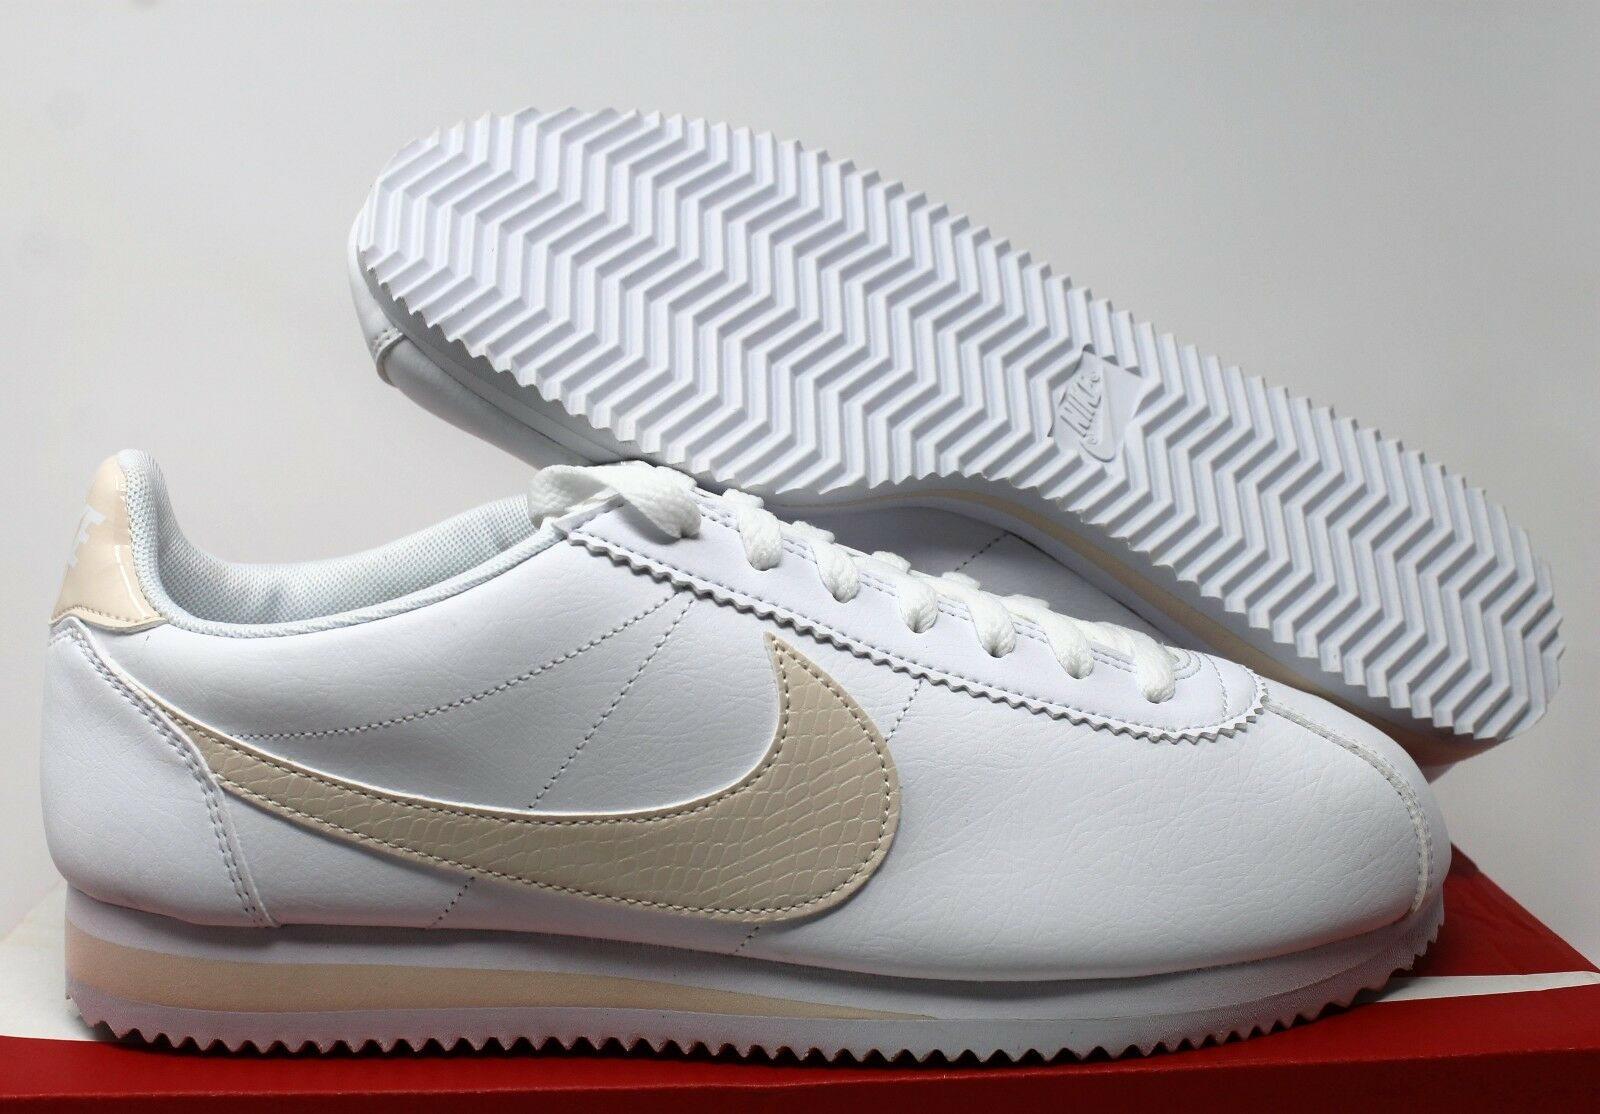 NIKE NIKE NIKE WOMEN CLASSIC CORTEZ LEATHER WHITE-GUAVA ICE SZ 11.5 5a7231